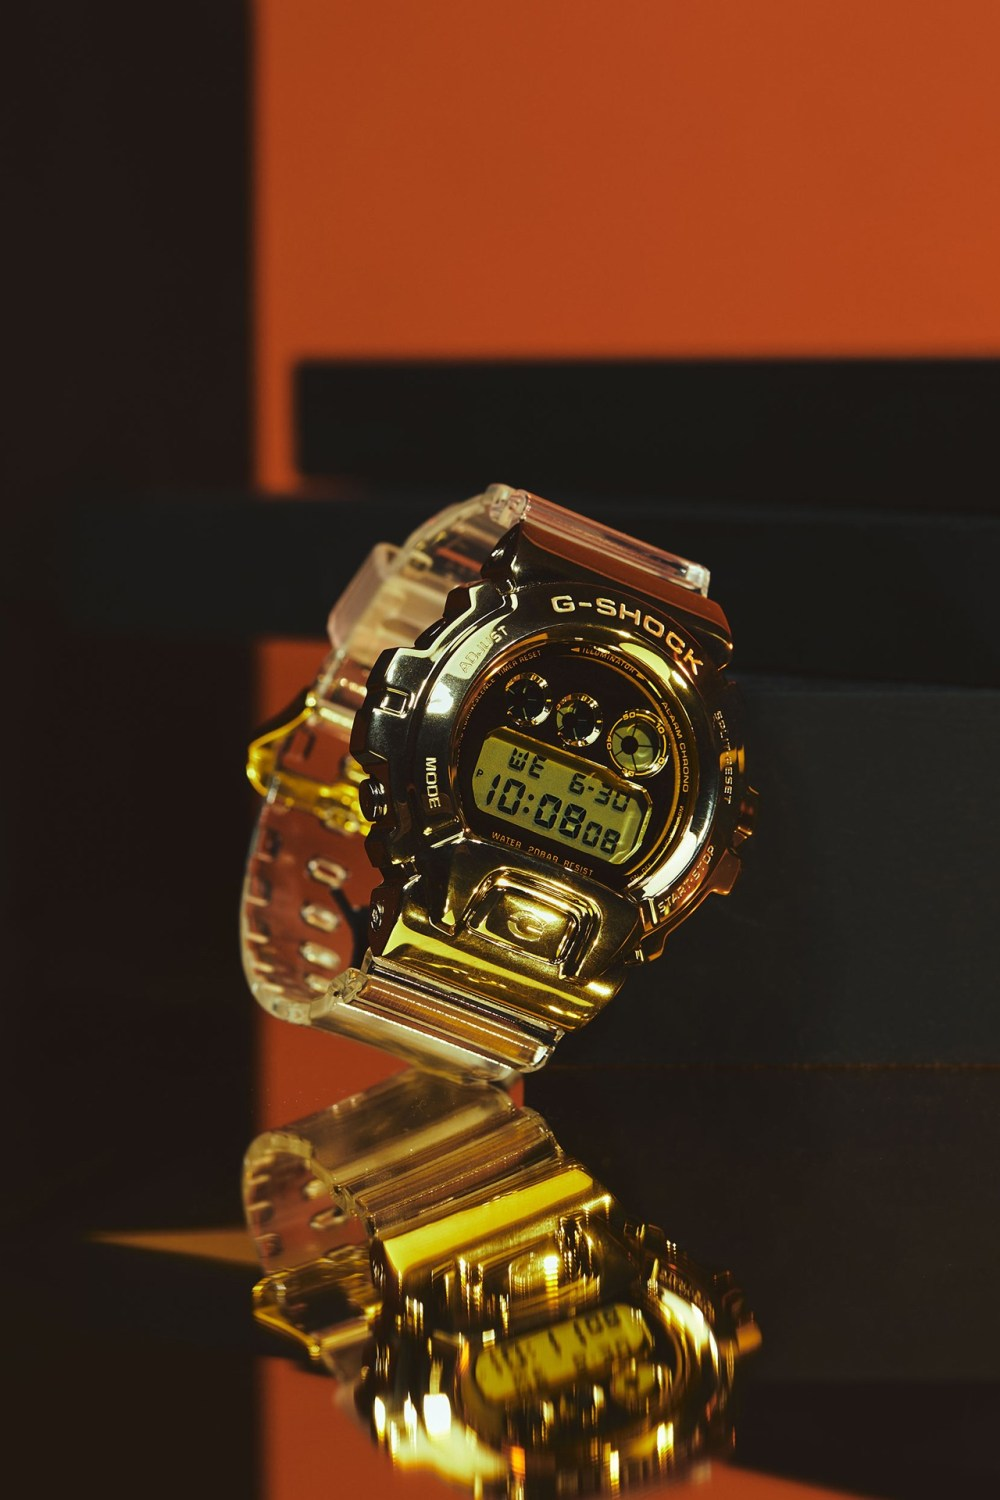 """""""Glacier Gold"""" series 2018, metal finishings, each watch's resin build with gold and silver embellishments, stainless steel bezels, ion plating, multiple stages of forging and polishing, signature feature, date calendar and backlight, shock-proof, shock resist, gold colorways, silver iterations w/ camo pattern, 200-meter waterproofing, world clock, stopwatch, timer and alarm clock"""